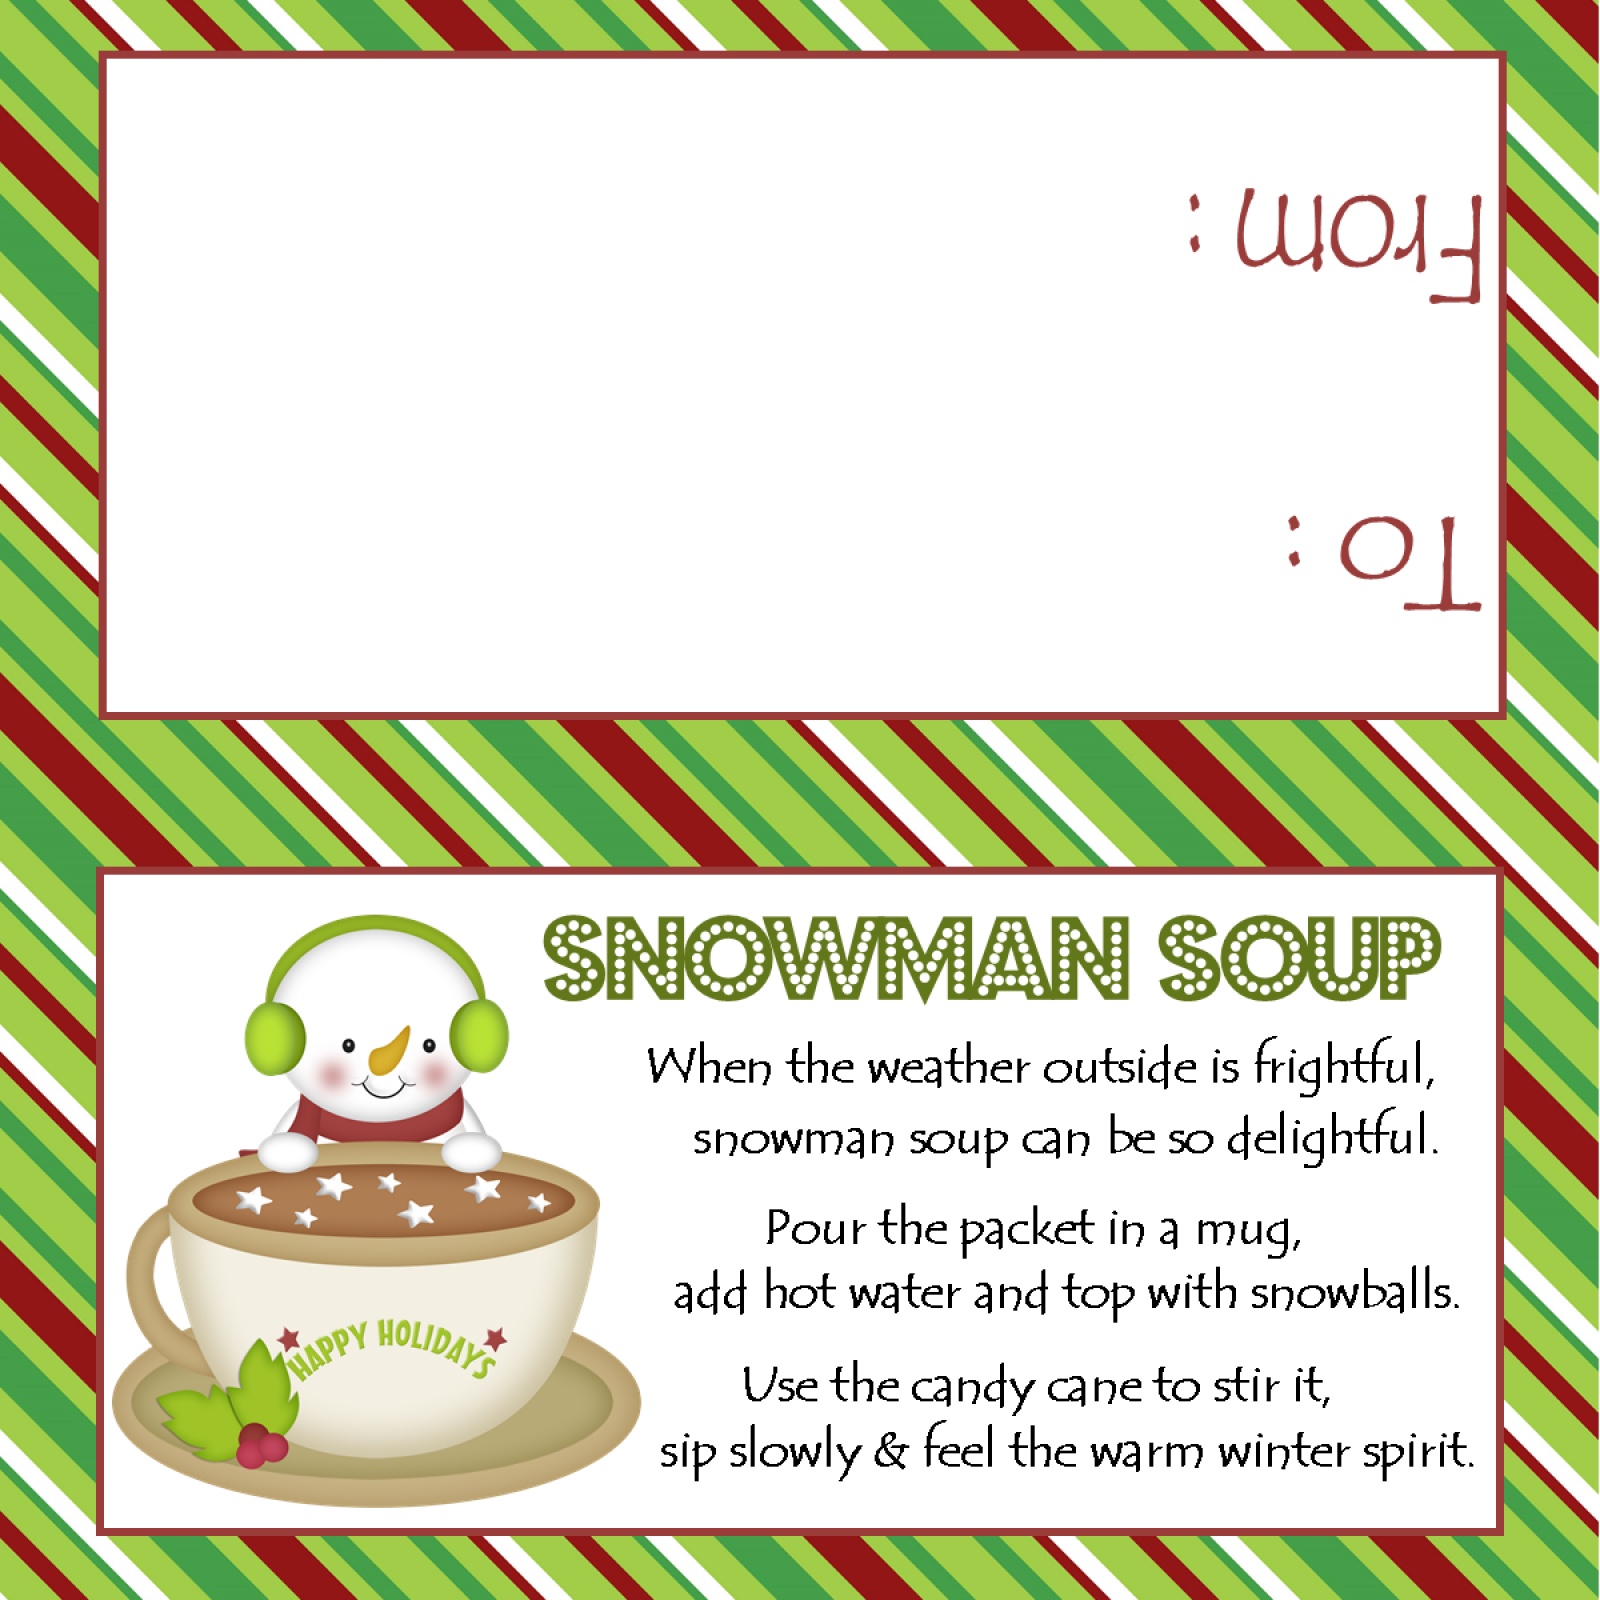 graphic about Snowman Soup Printable named Snowman Soup - Take care of Bag Topper - Electronic Record - On your own print!